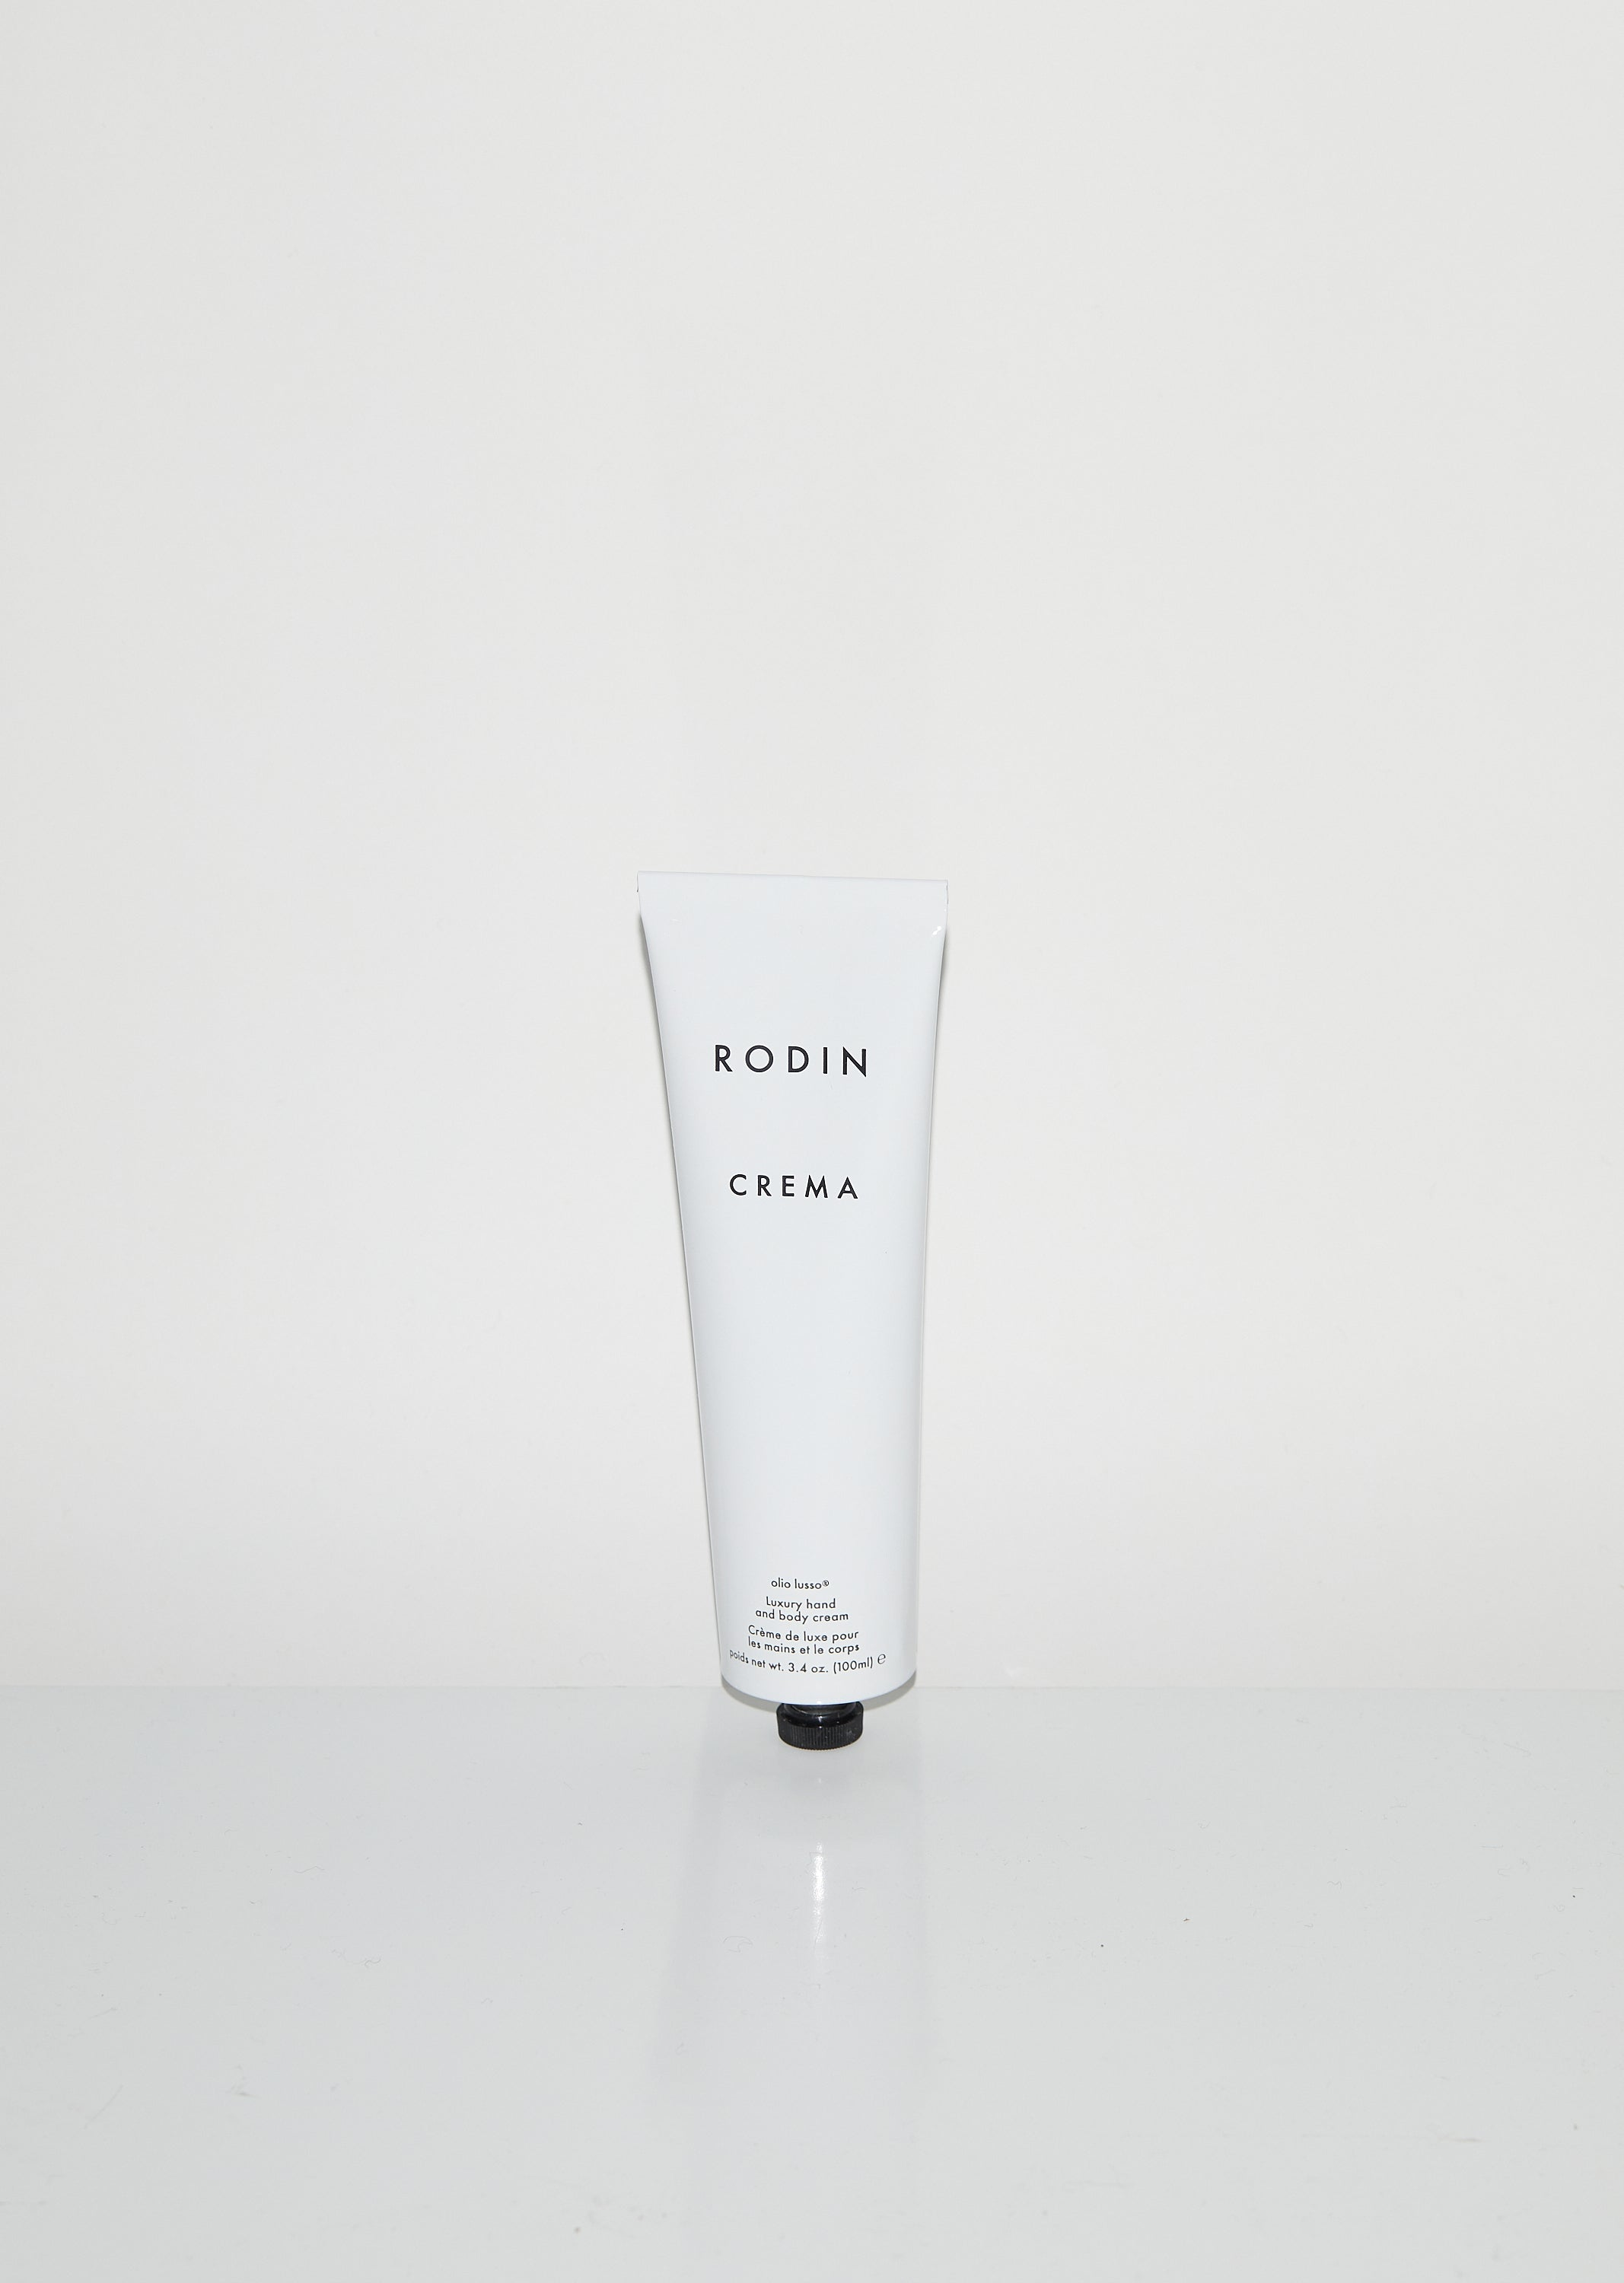 elements metal pathwork waves x 24quot home home.htm crema luxury hand cream by rodin la gar  onne     la gar  onne  crema luxury hand cream by rodin la